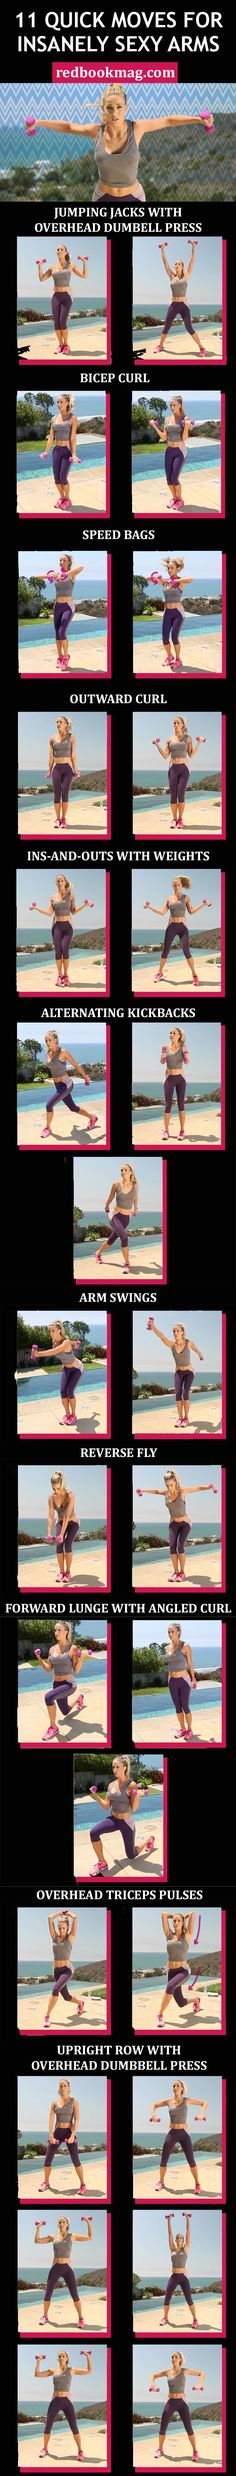 SEXY ARM WORKOUT FOR WOMEN: Grab a set of to dumbbells, and do 20 to 30 reps of each move in quick succession to tone your arms, back, chest, and legs. Repeat the entire sequence two to three times to get toned arms fast! Click through for the fast diet Fitness Workouts, Training Fitness, Fitness Diet, At Home Workouts, Fitness Motivation, Health Fitness, Arm Workouts, Workout Diet, Killer Leg Workouts